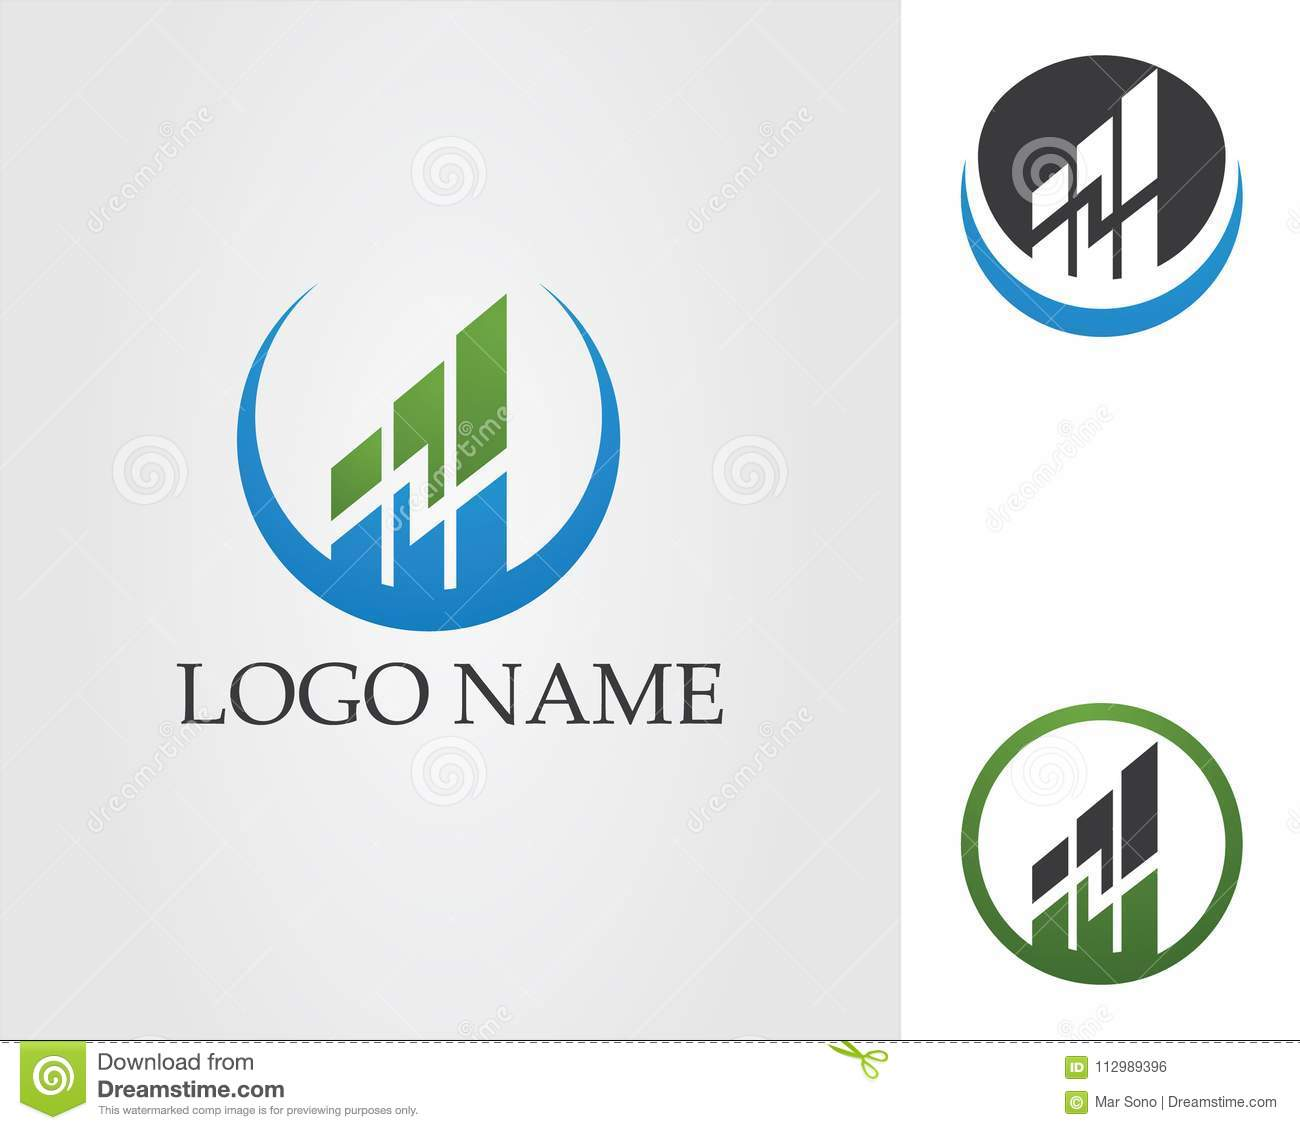 Business finance logo and symbols vector concept illustration..